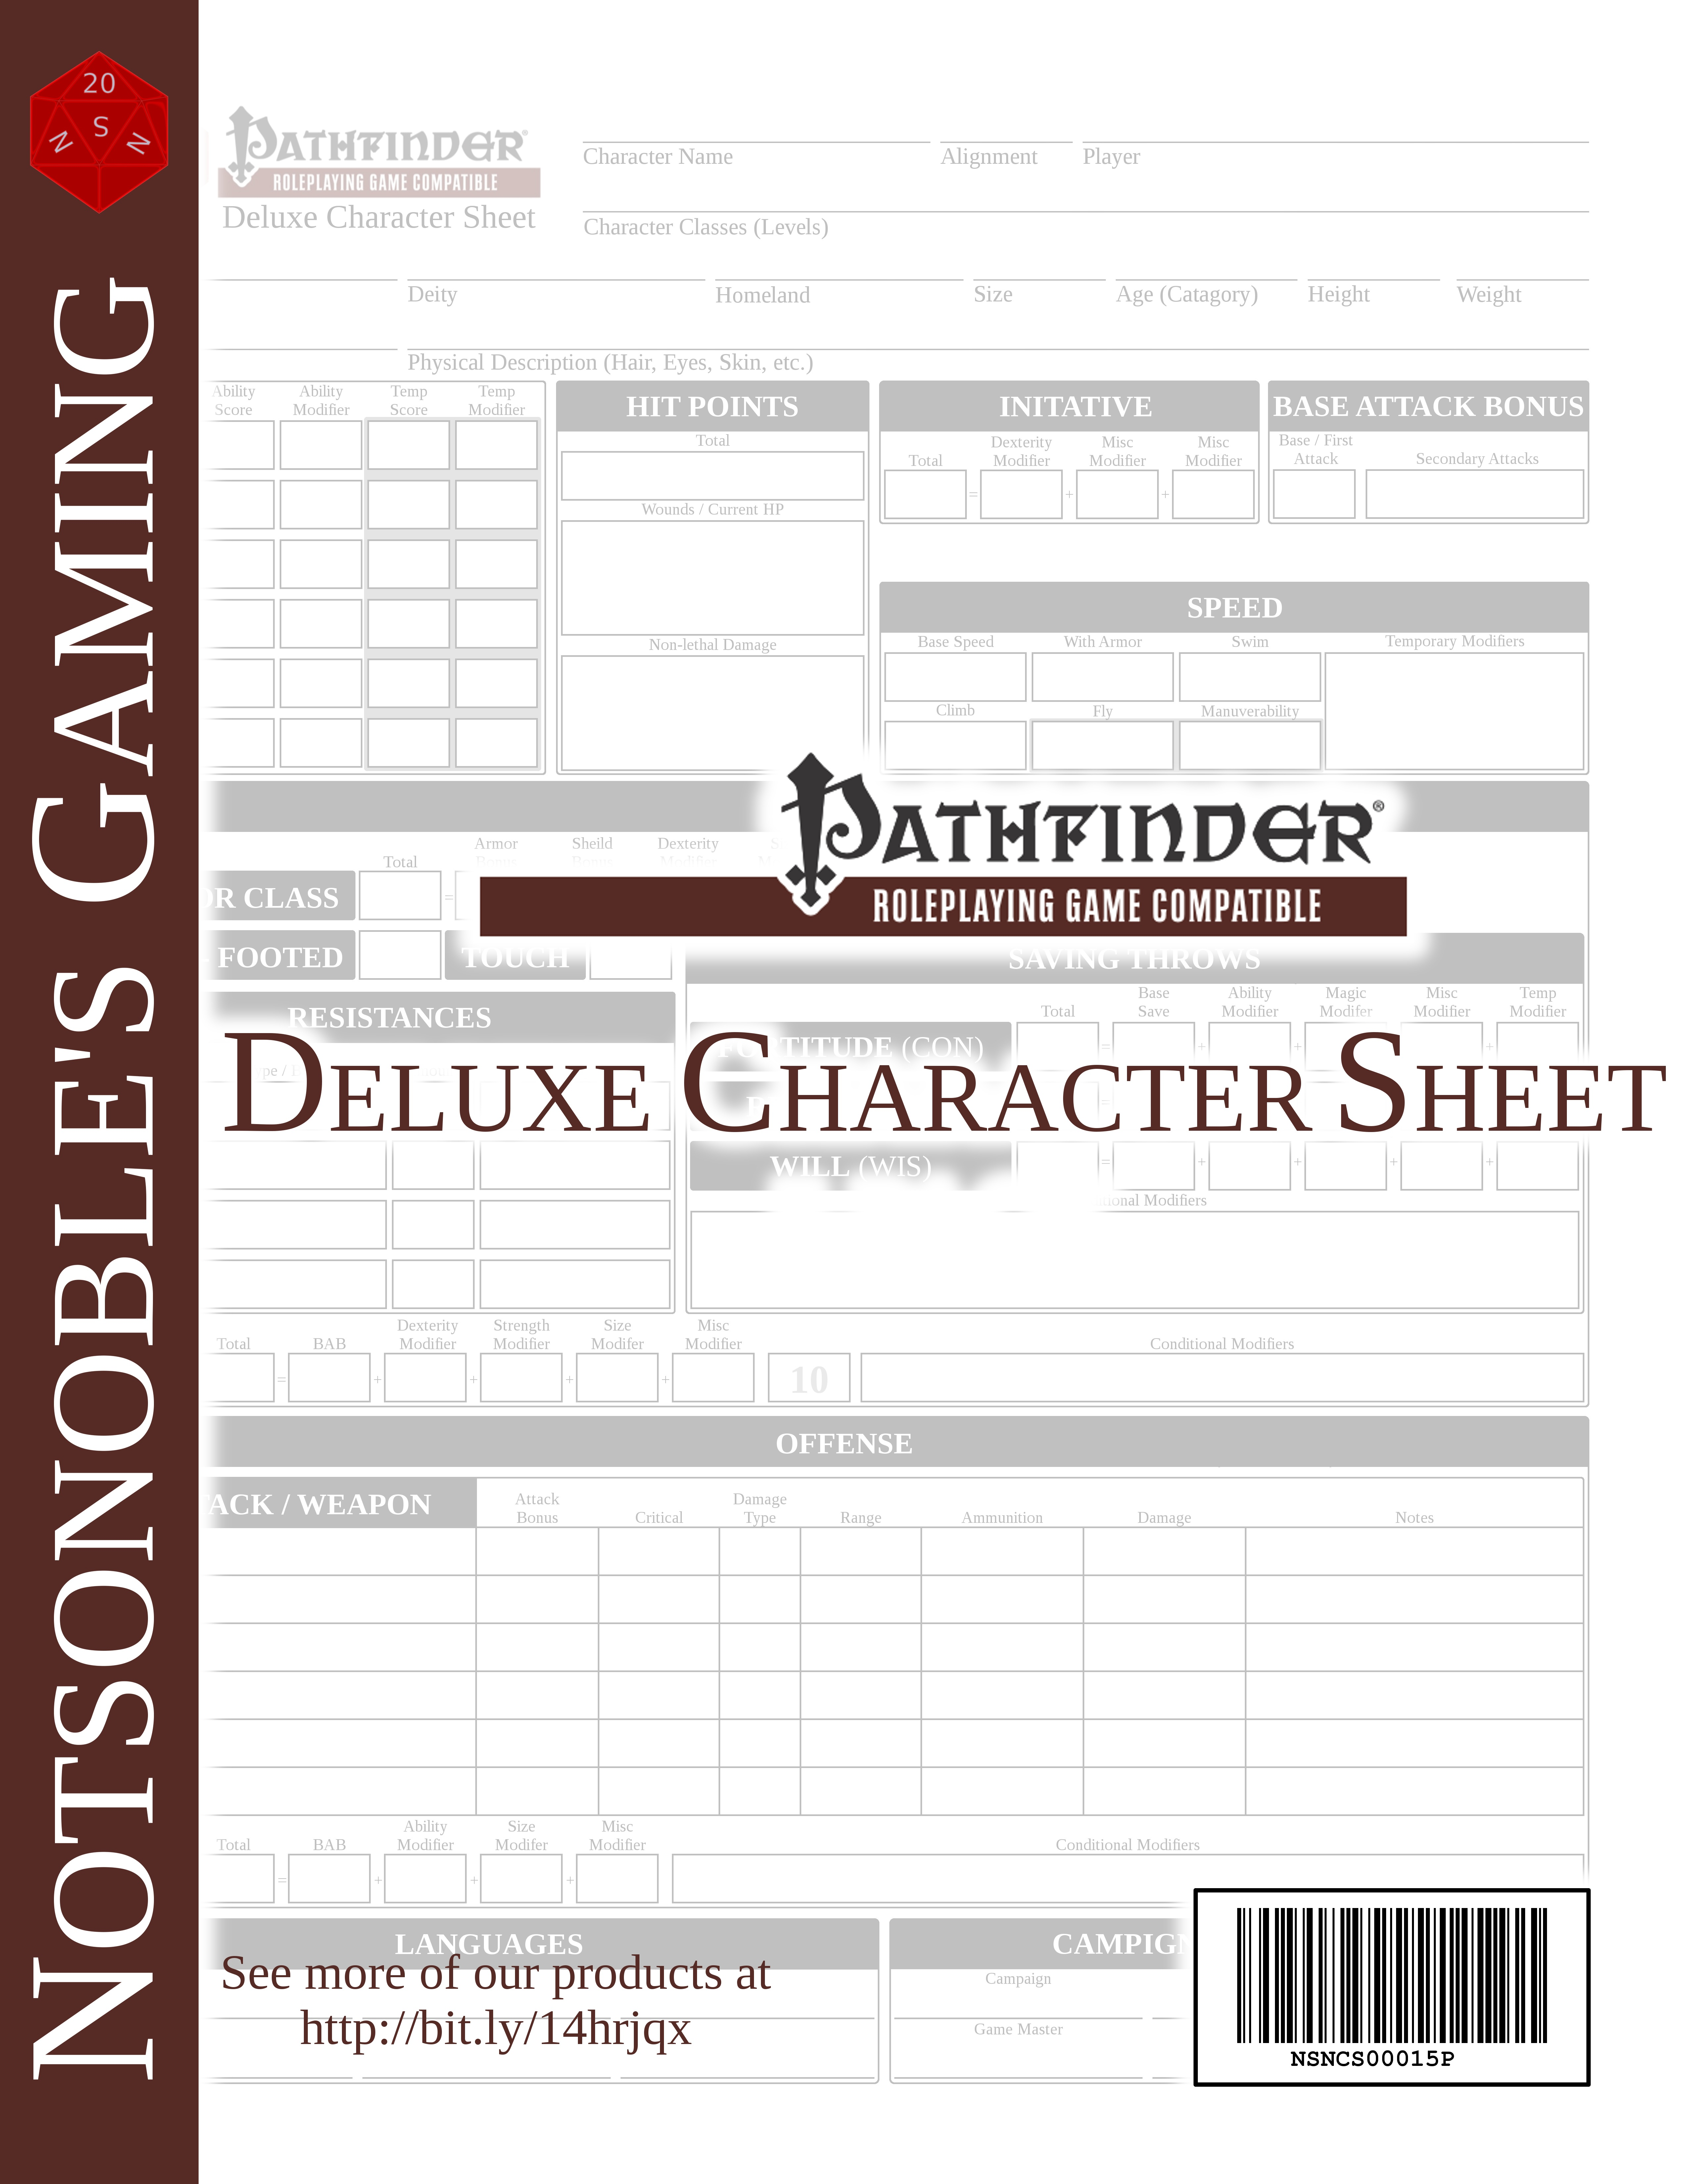 Character Sheets Pdf Images - Reverse Search